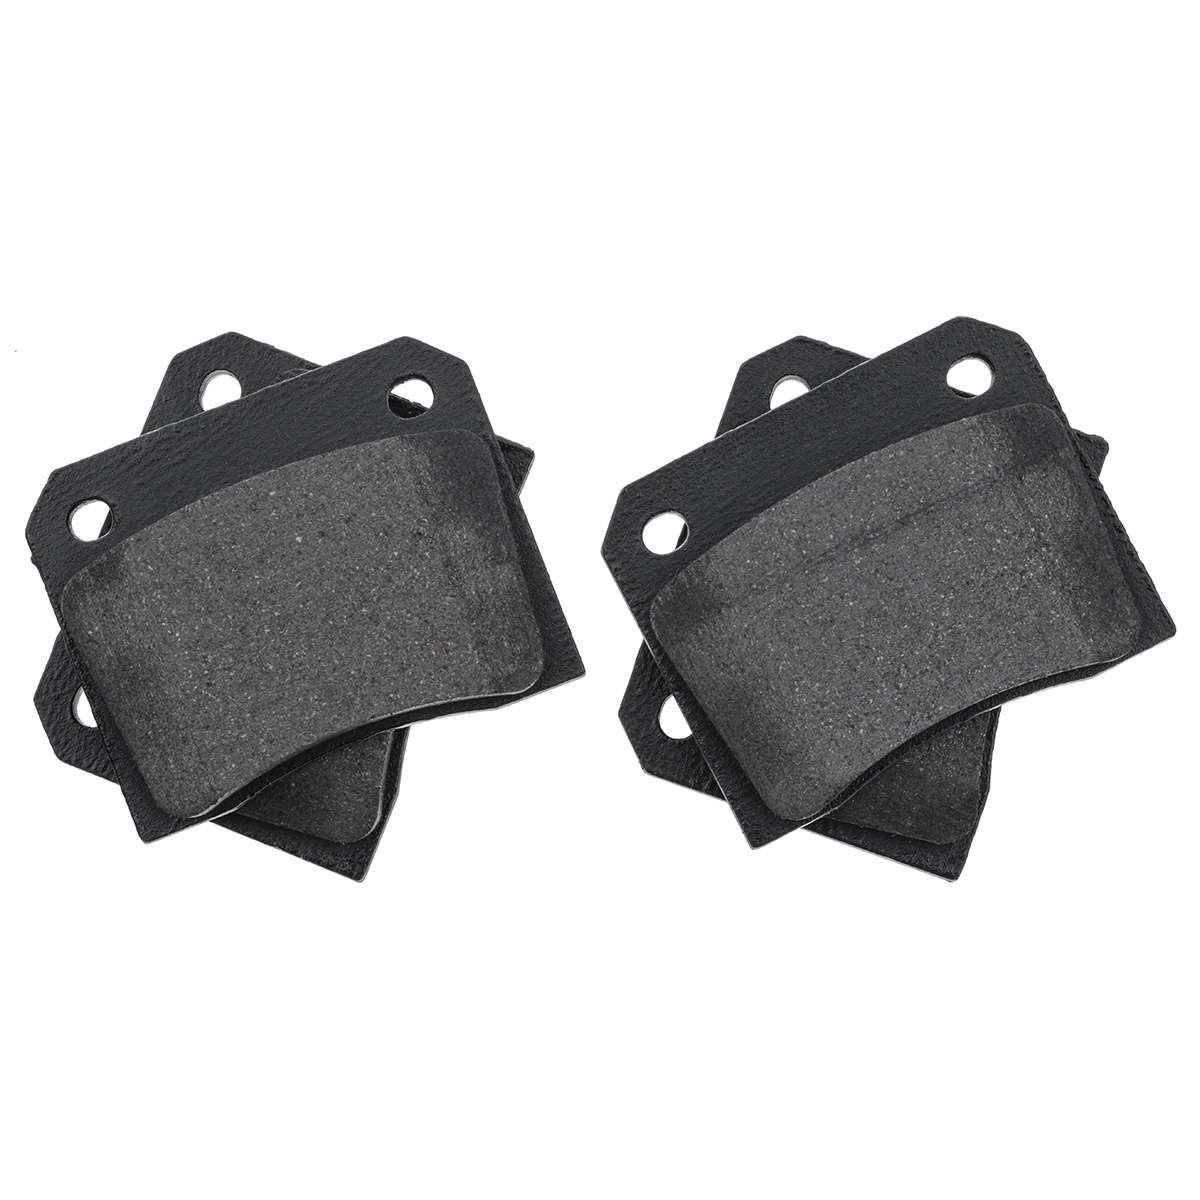 QH Front Brake Pads Set of 4 for JAGUAR E TYPE Series 2 /& 3-1968 to 1975